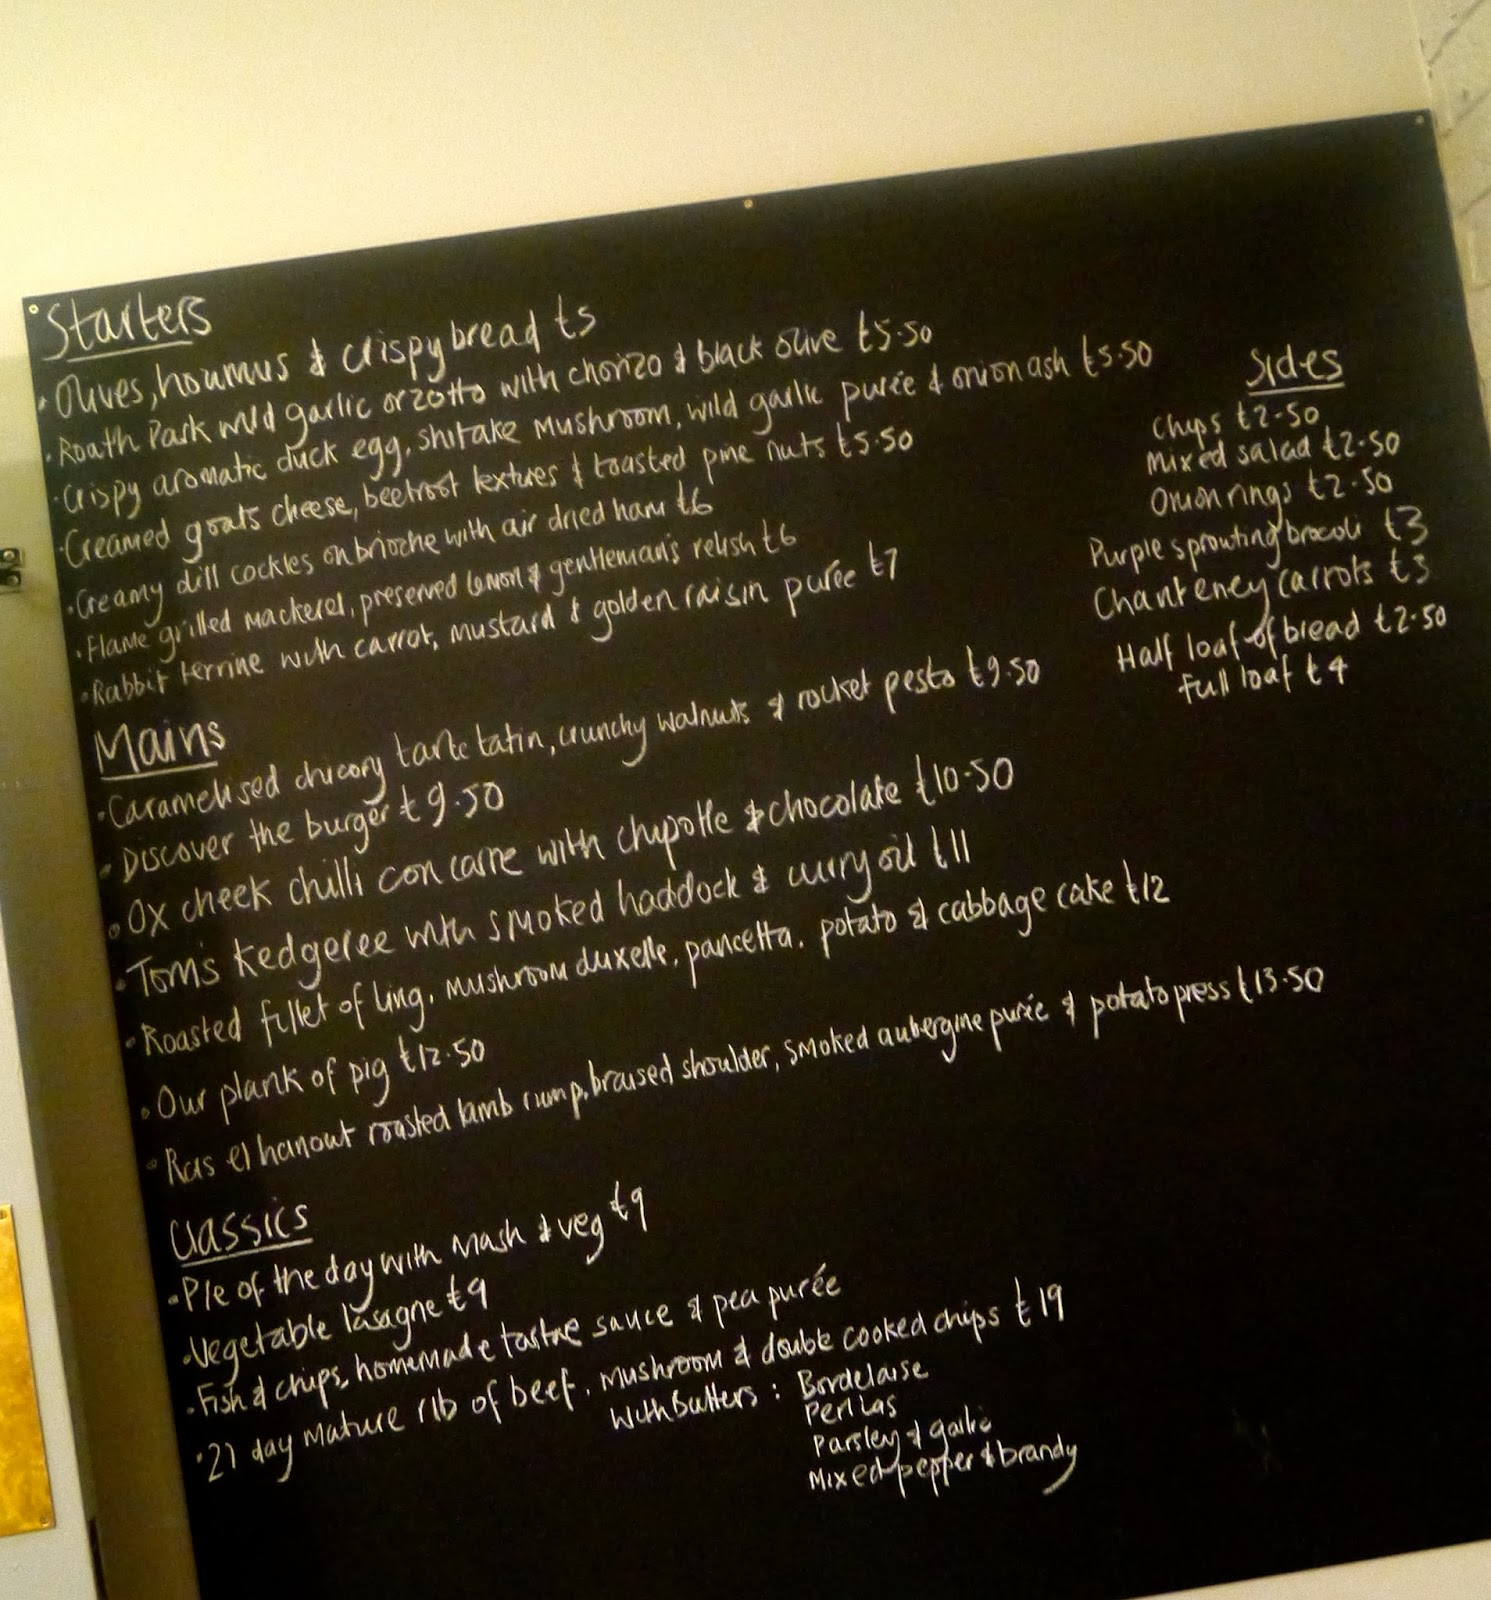 Blackboard menu at The Discovery